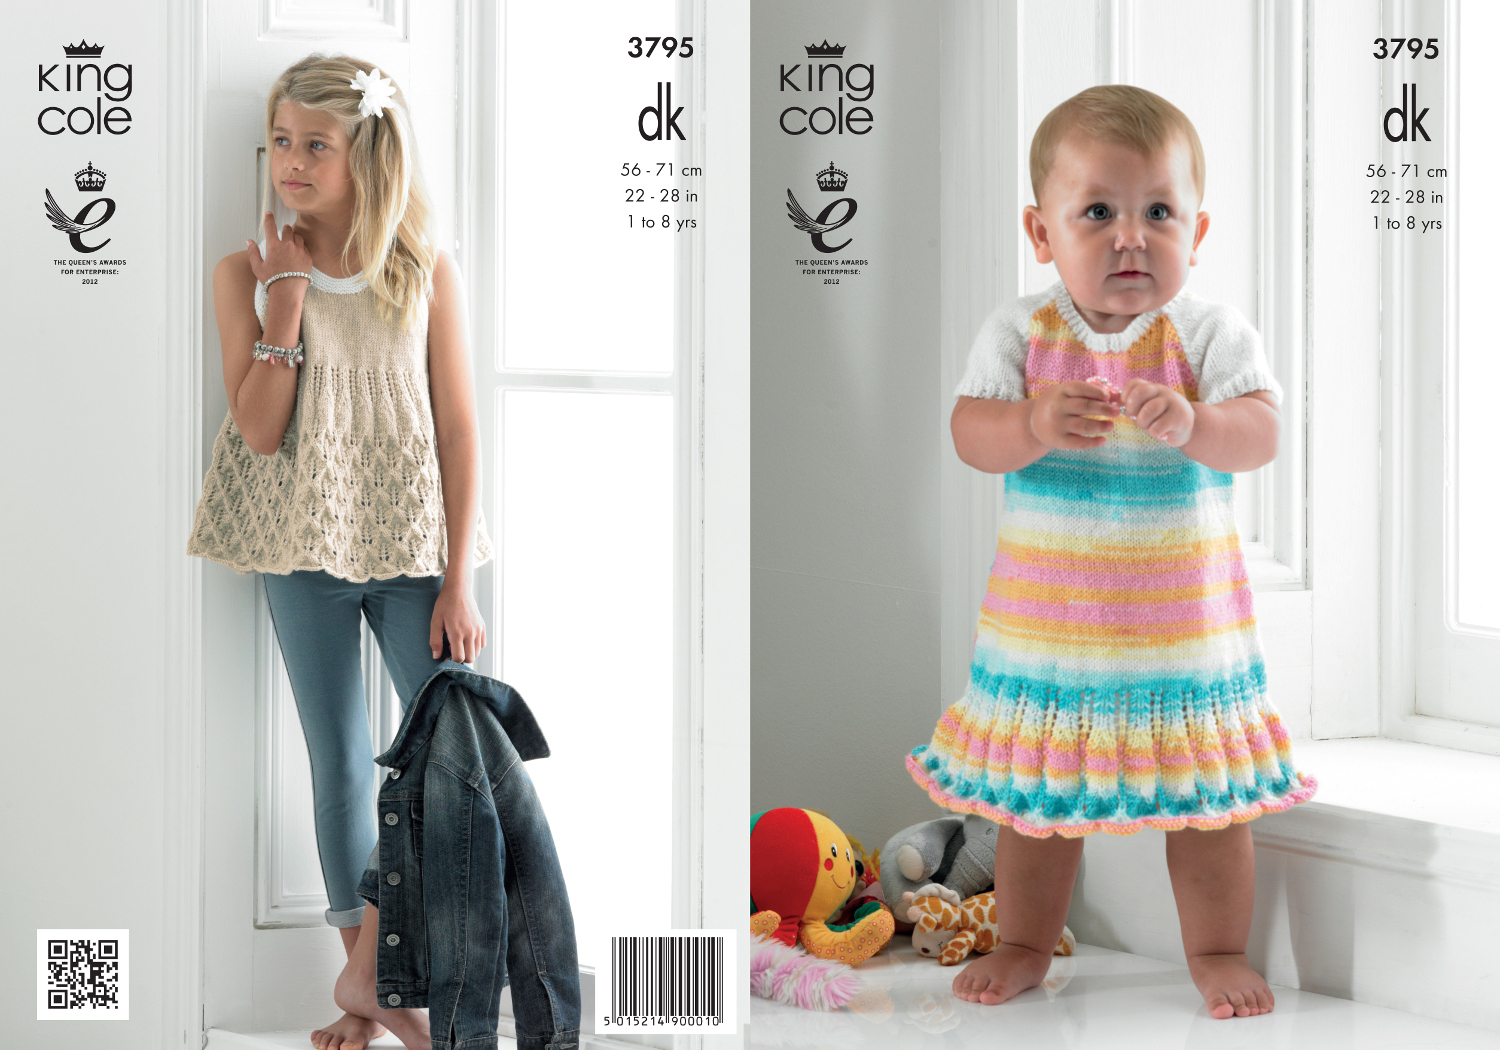 King cole baby double knitting dk pattern smock top striped king cole baby double knitting dk pattern smock top striped frilled dress 3795 bankloansurffo Choice Image